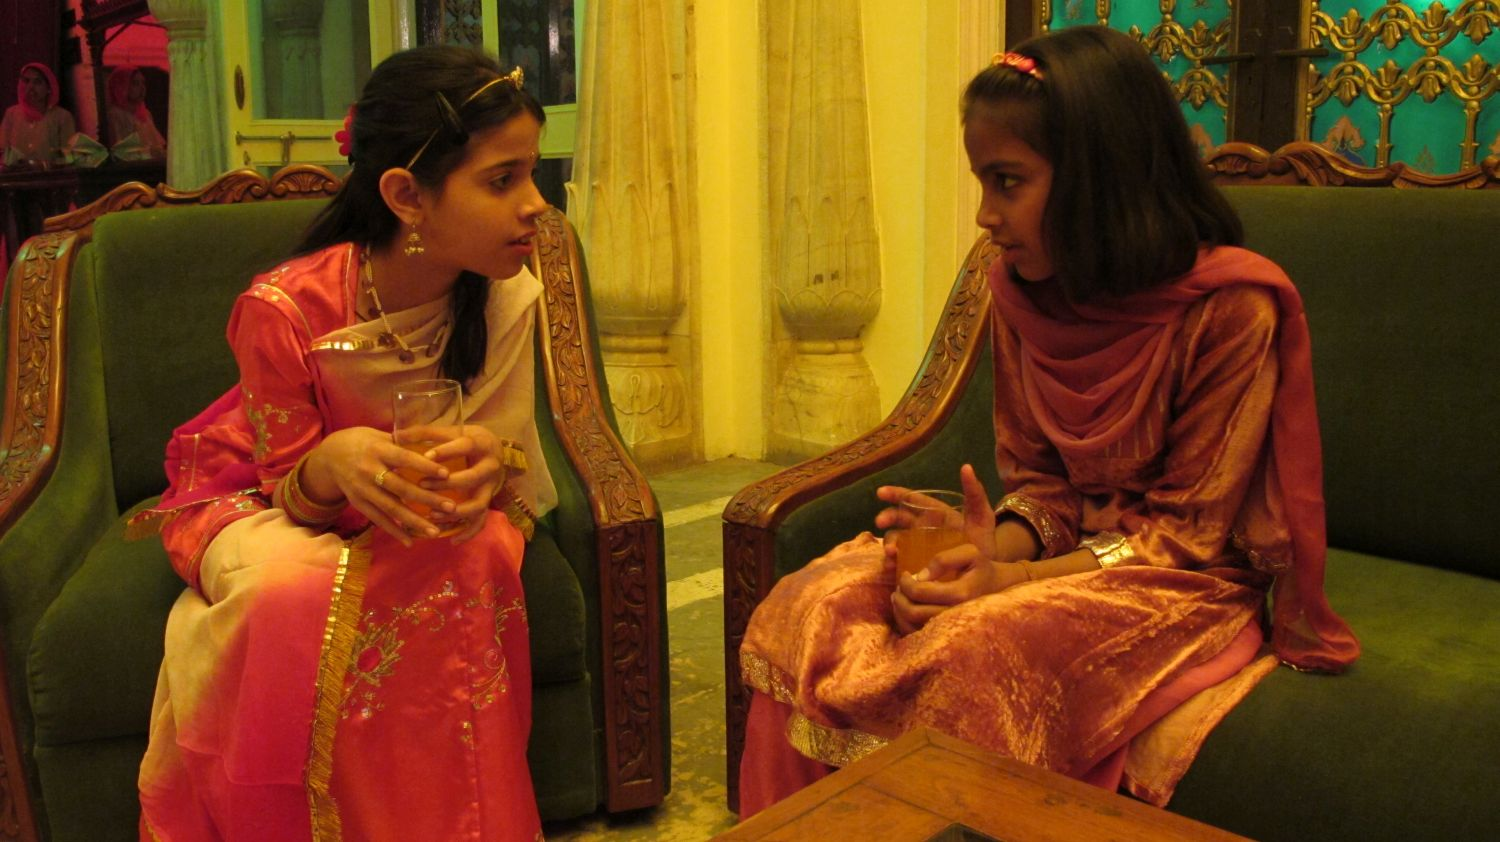 City palace of Jaipur | Royal family | Private party | Little princess | ©sandrine cohen